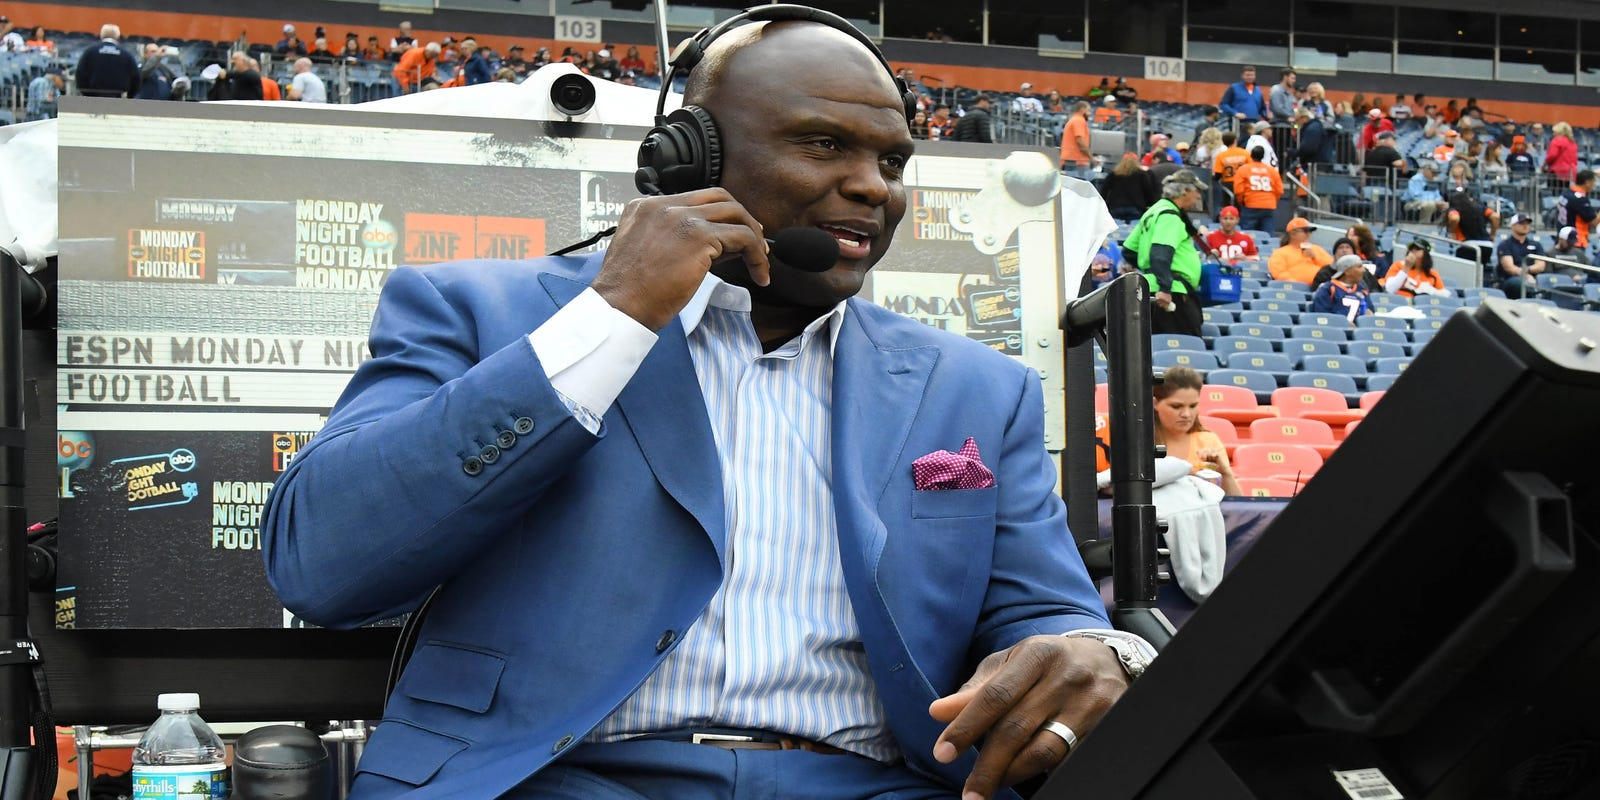 Espn S Booger Mcfarland Dangerously Wrong On Young Black Nfl Players